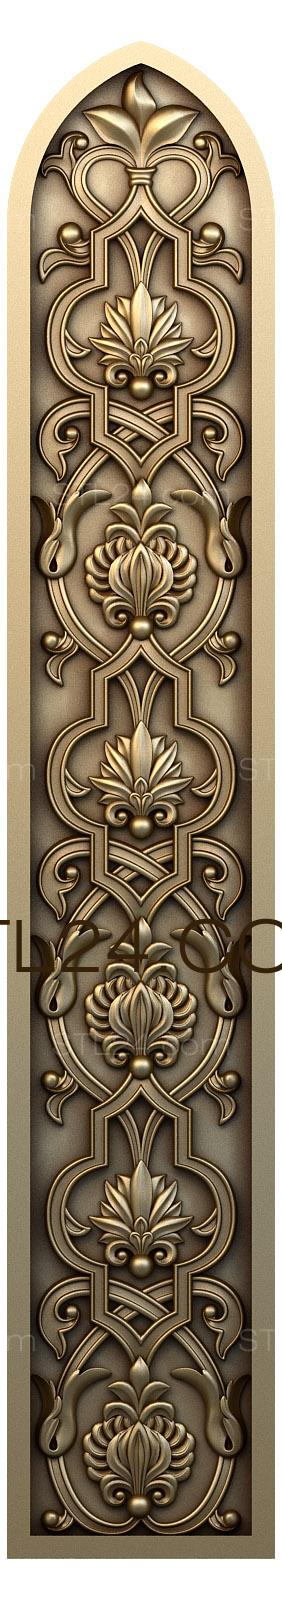 Church panel (PC_0095) - 3D model for CNC